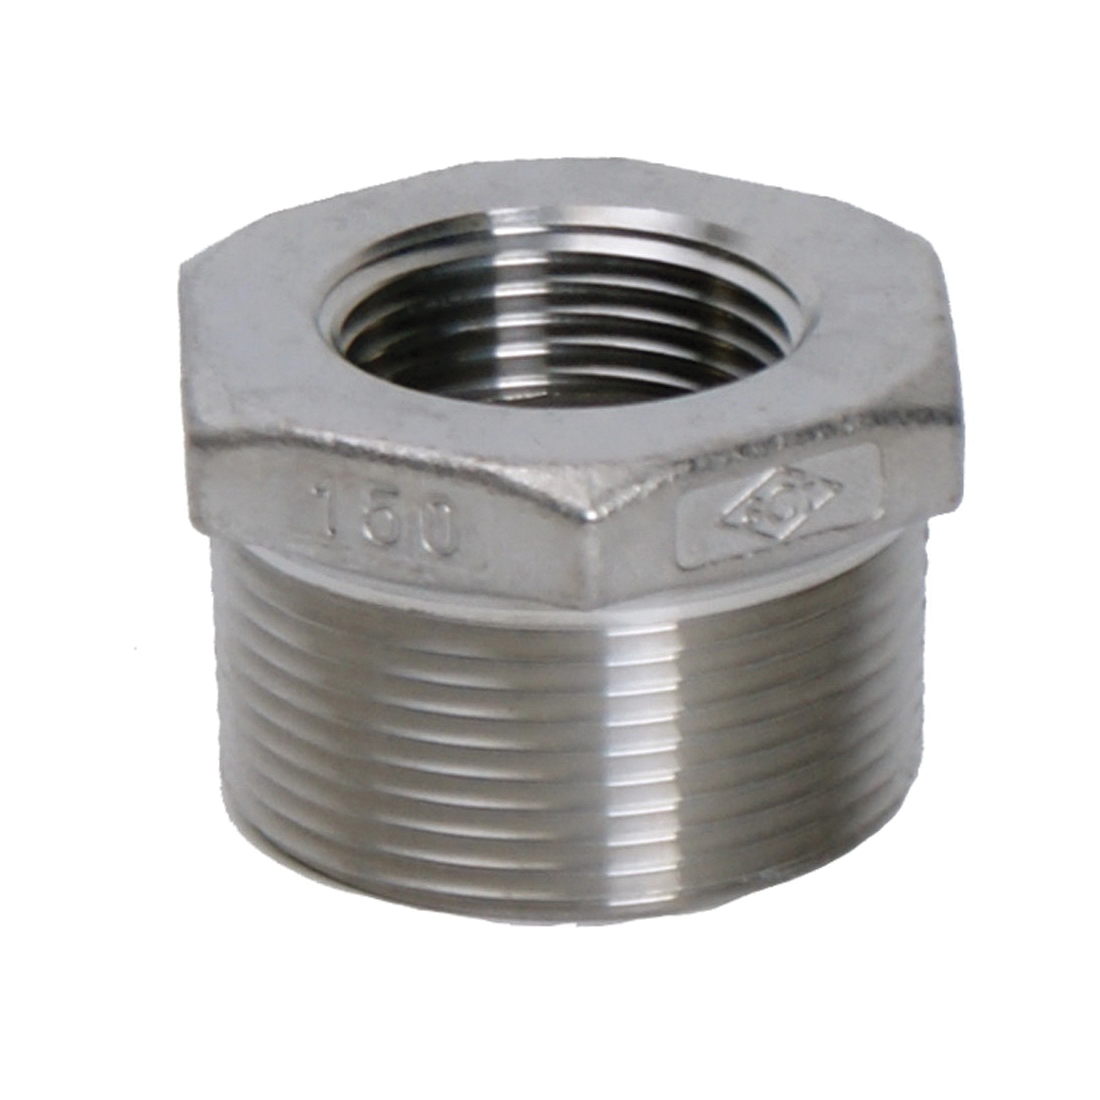 Smith-Cooper® S3114HB024020 S3014HB Hex Head Bushing, 2-1/2 x 2 in, FNPT, 150 lb, 304 Stainless Steel